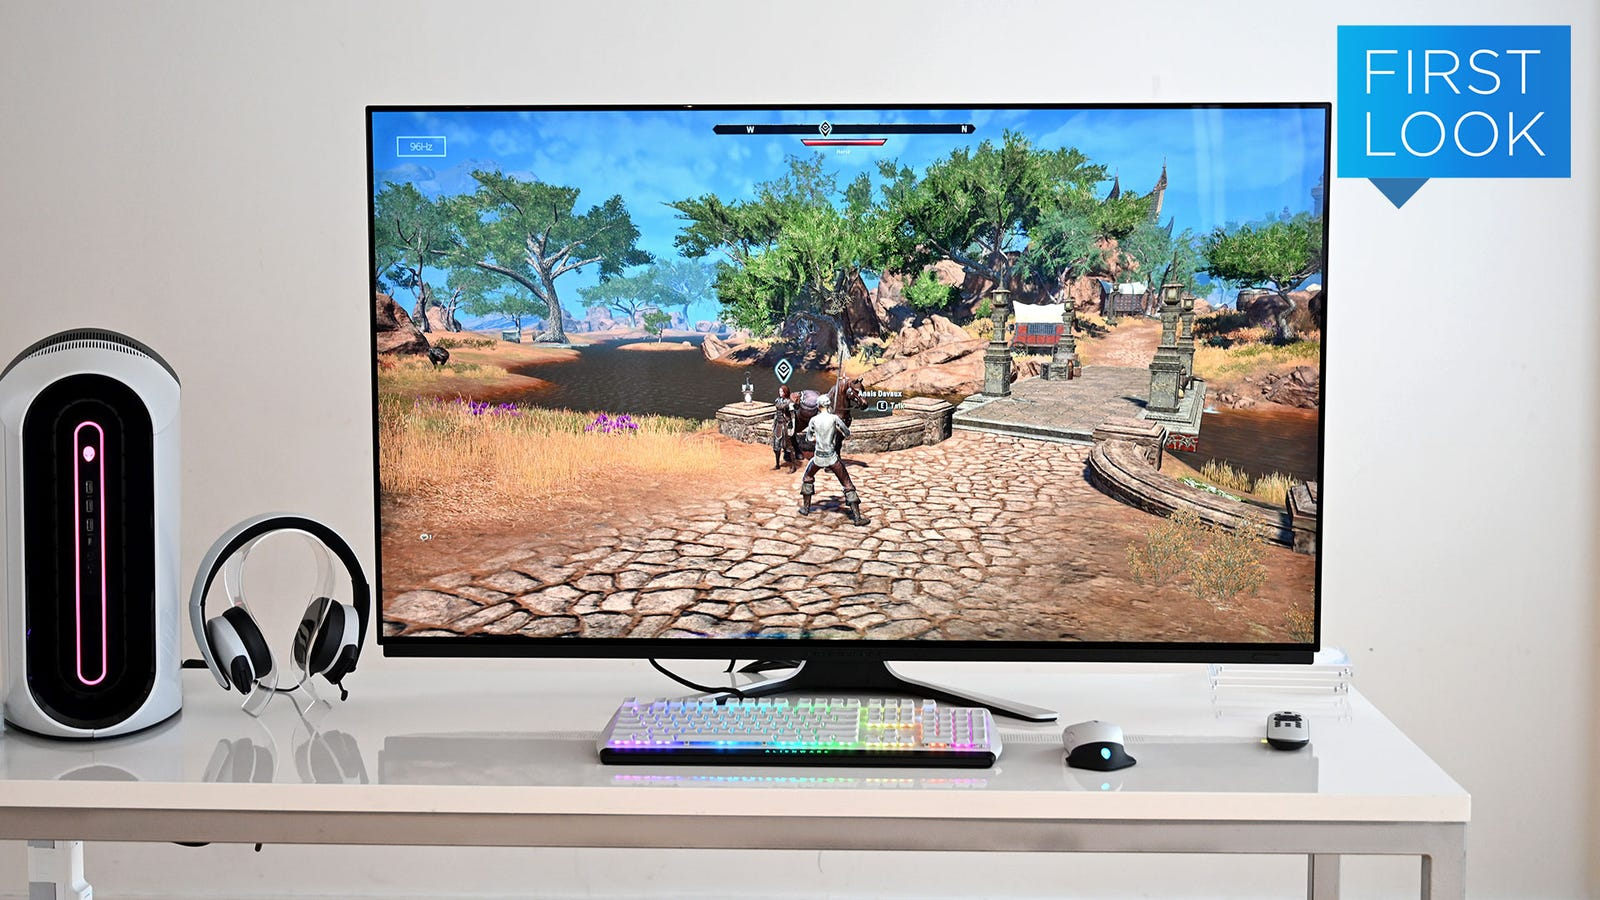 Alienware Made the World's First 55-inch OLED Gaming Monitor, and It Looks Sick